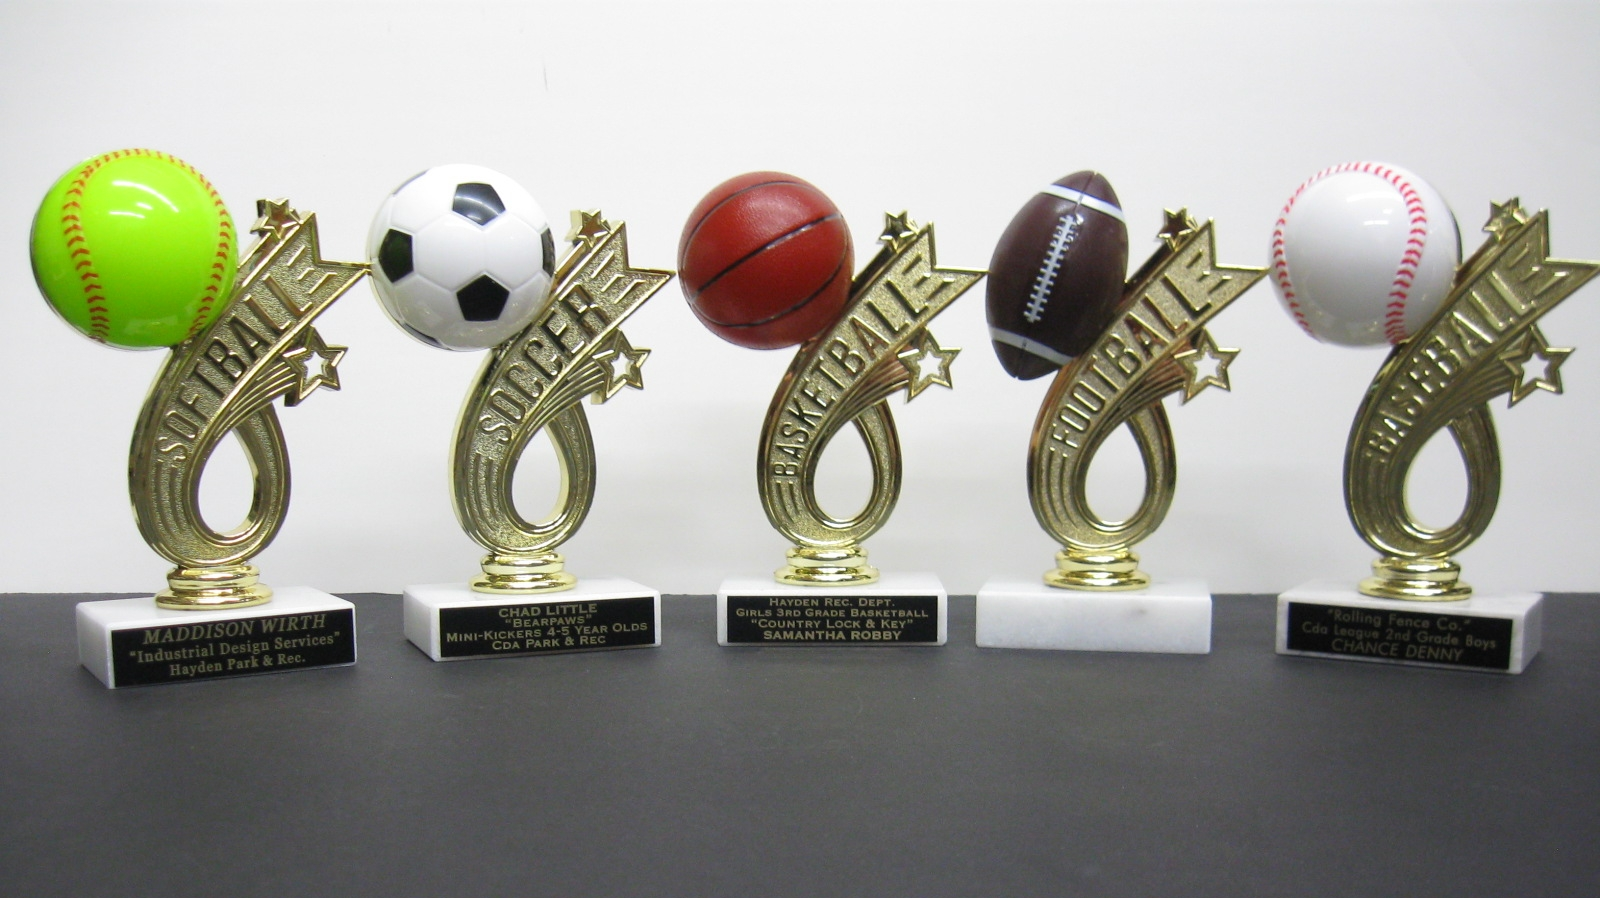 Baseball, Softball, Soccer, or Basketball figures on Marble Base - $7.42 each (Includes tax & engraving). [ITEM#:  16N ] Note: Engraving plates in pictures are included in price. See trophies below for ex.)